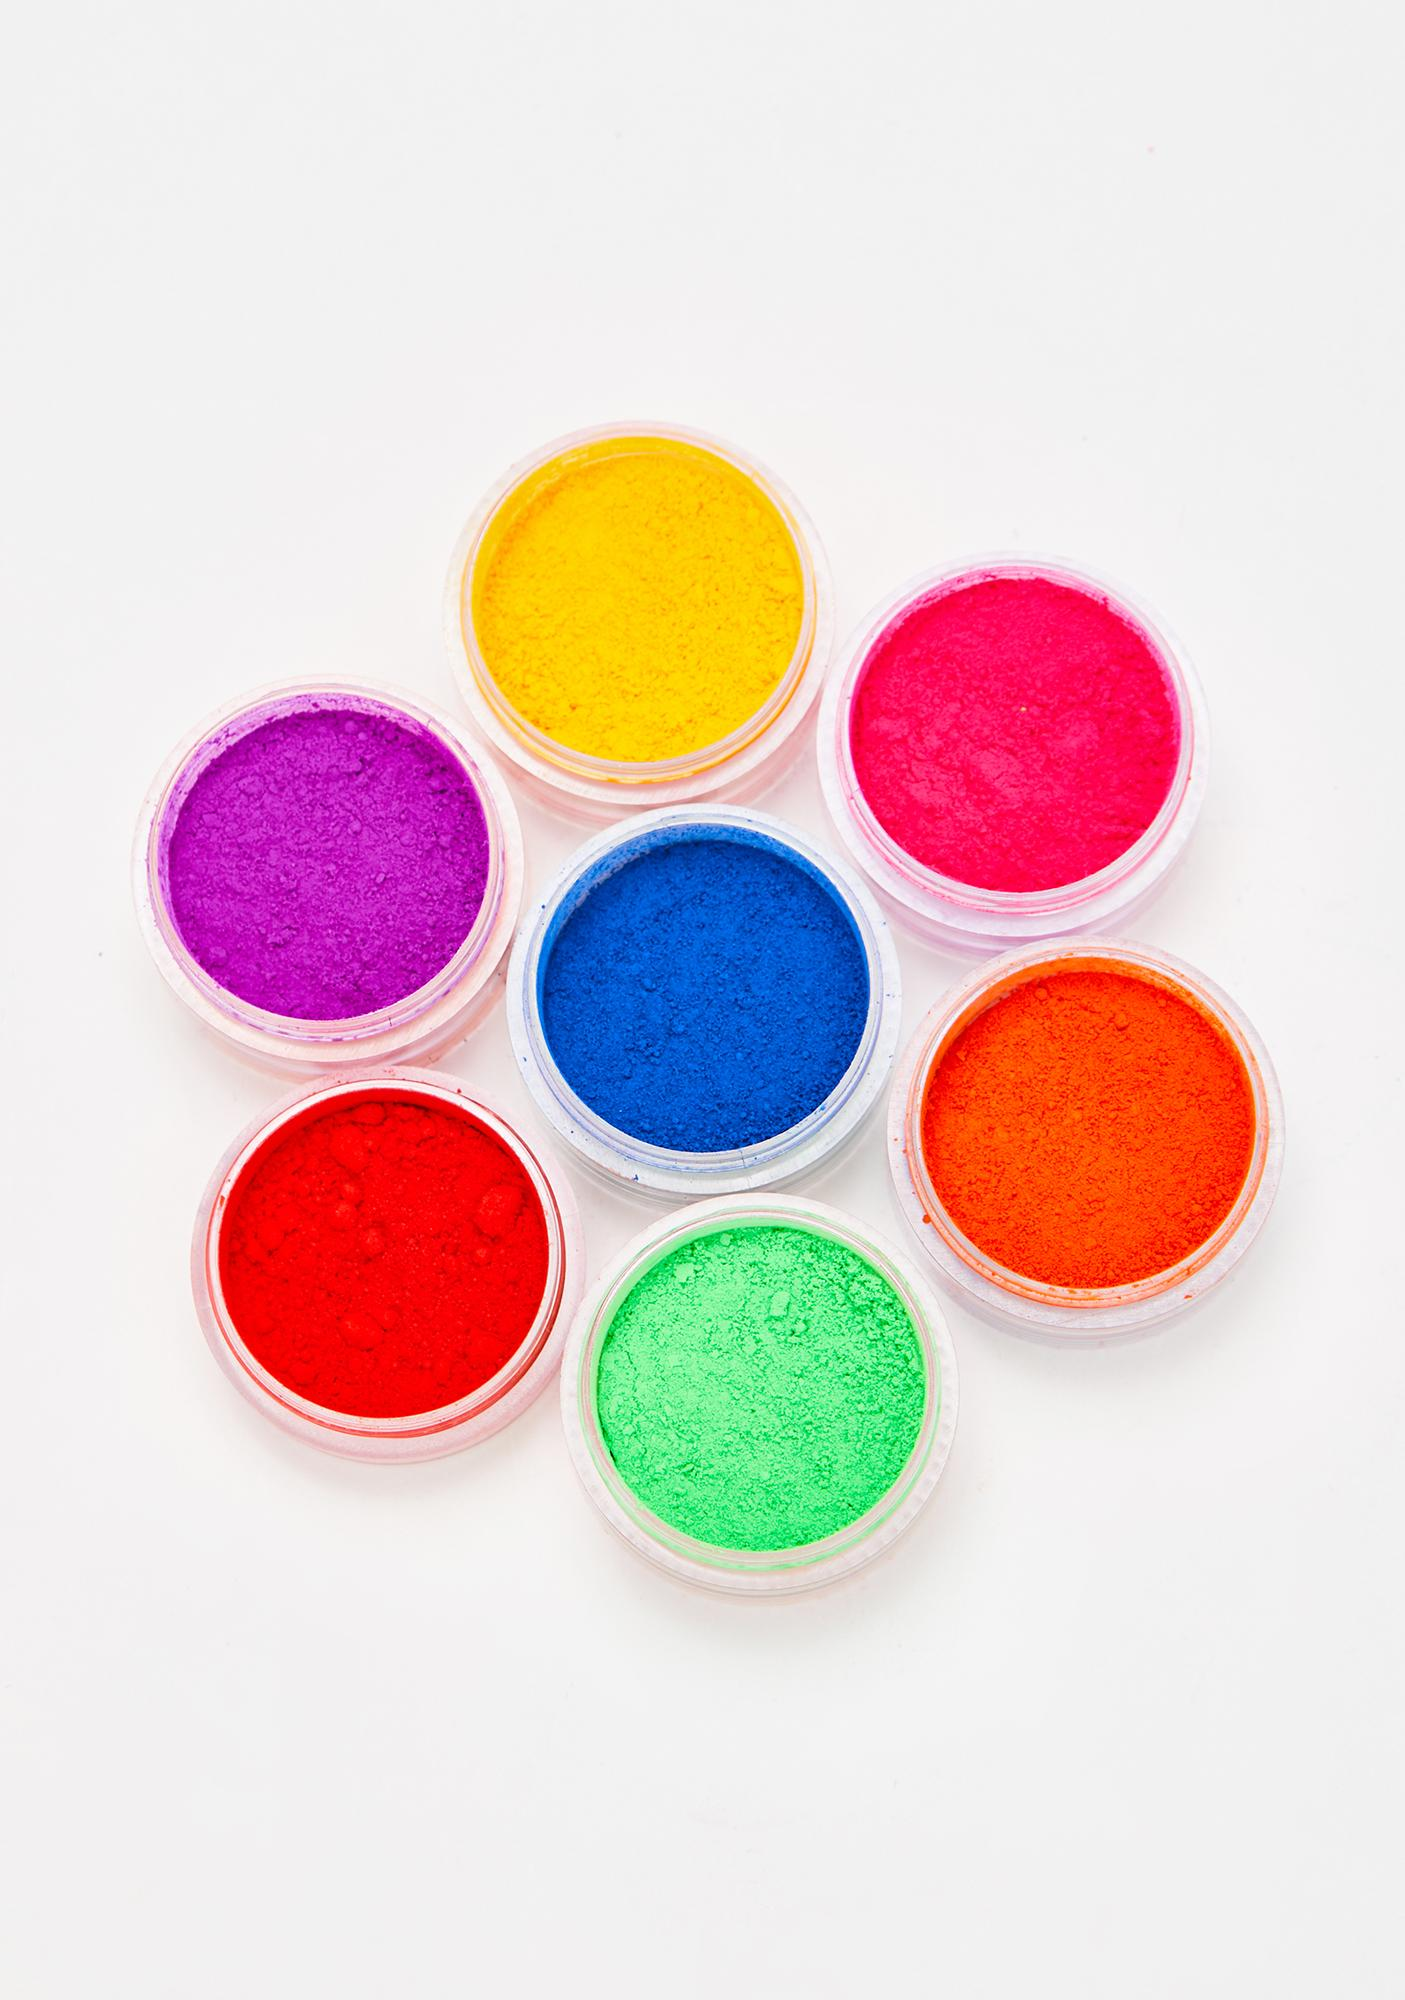 Ruby May Cosmetics Rainbow Pigment Stack